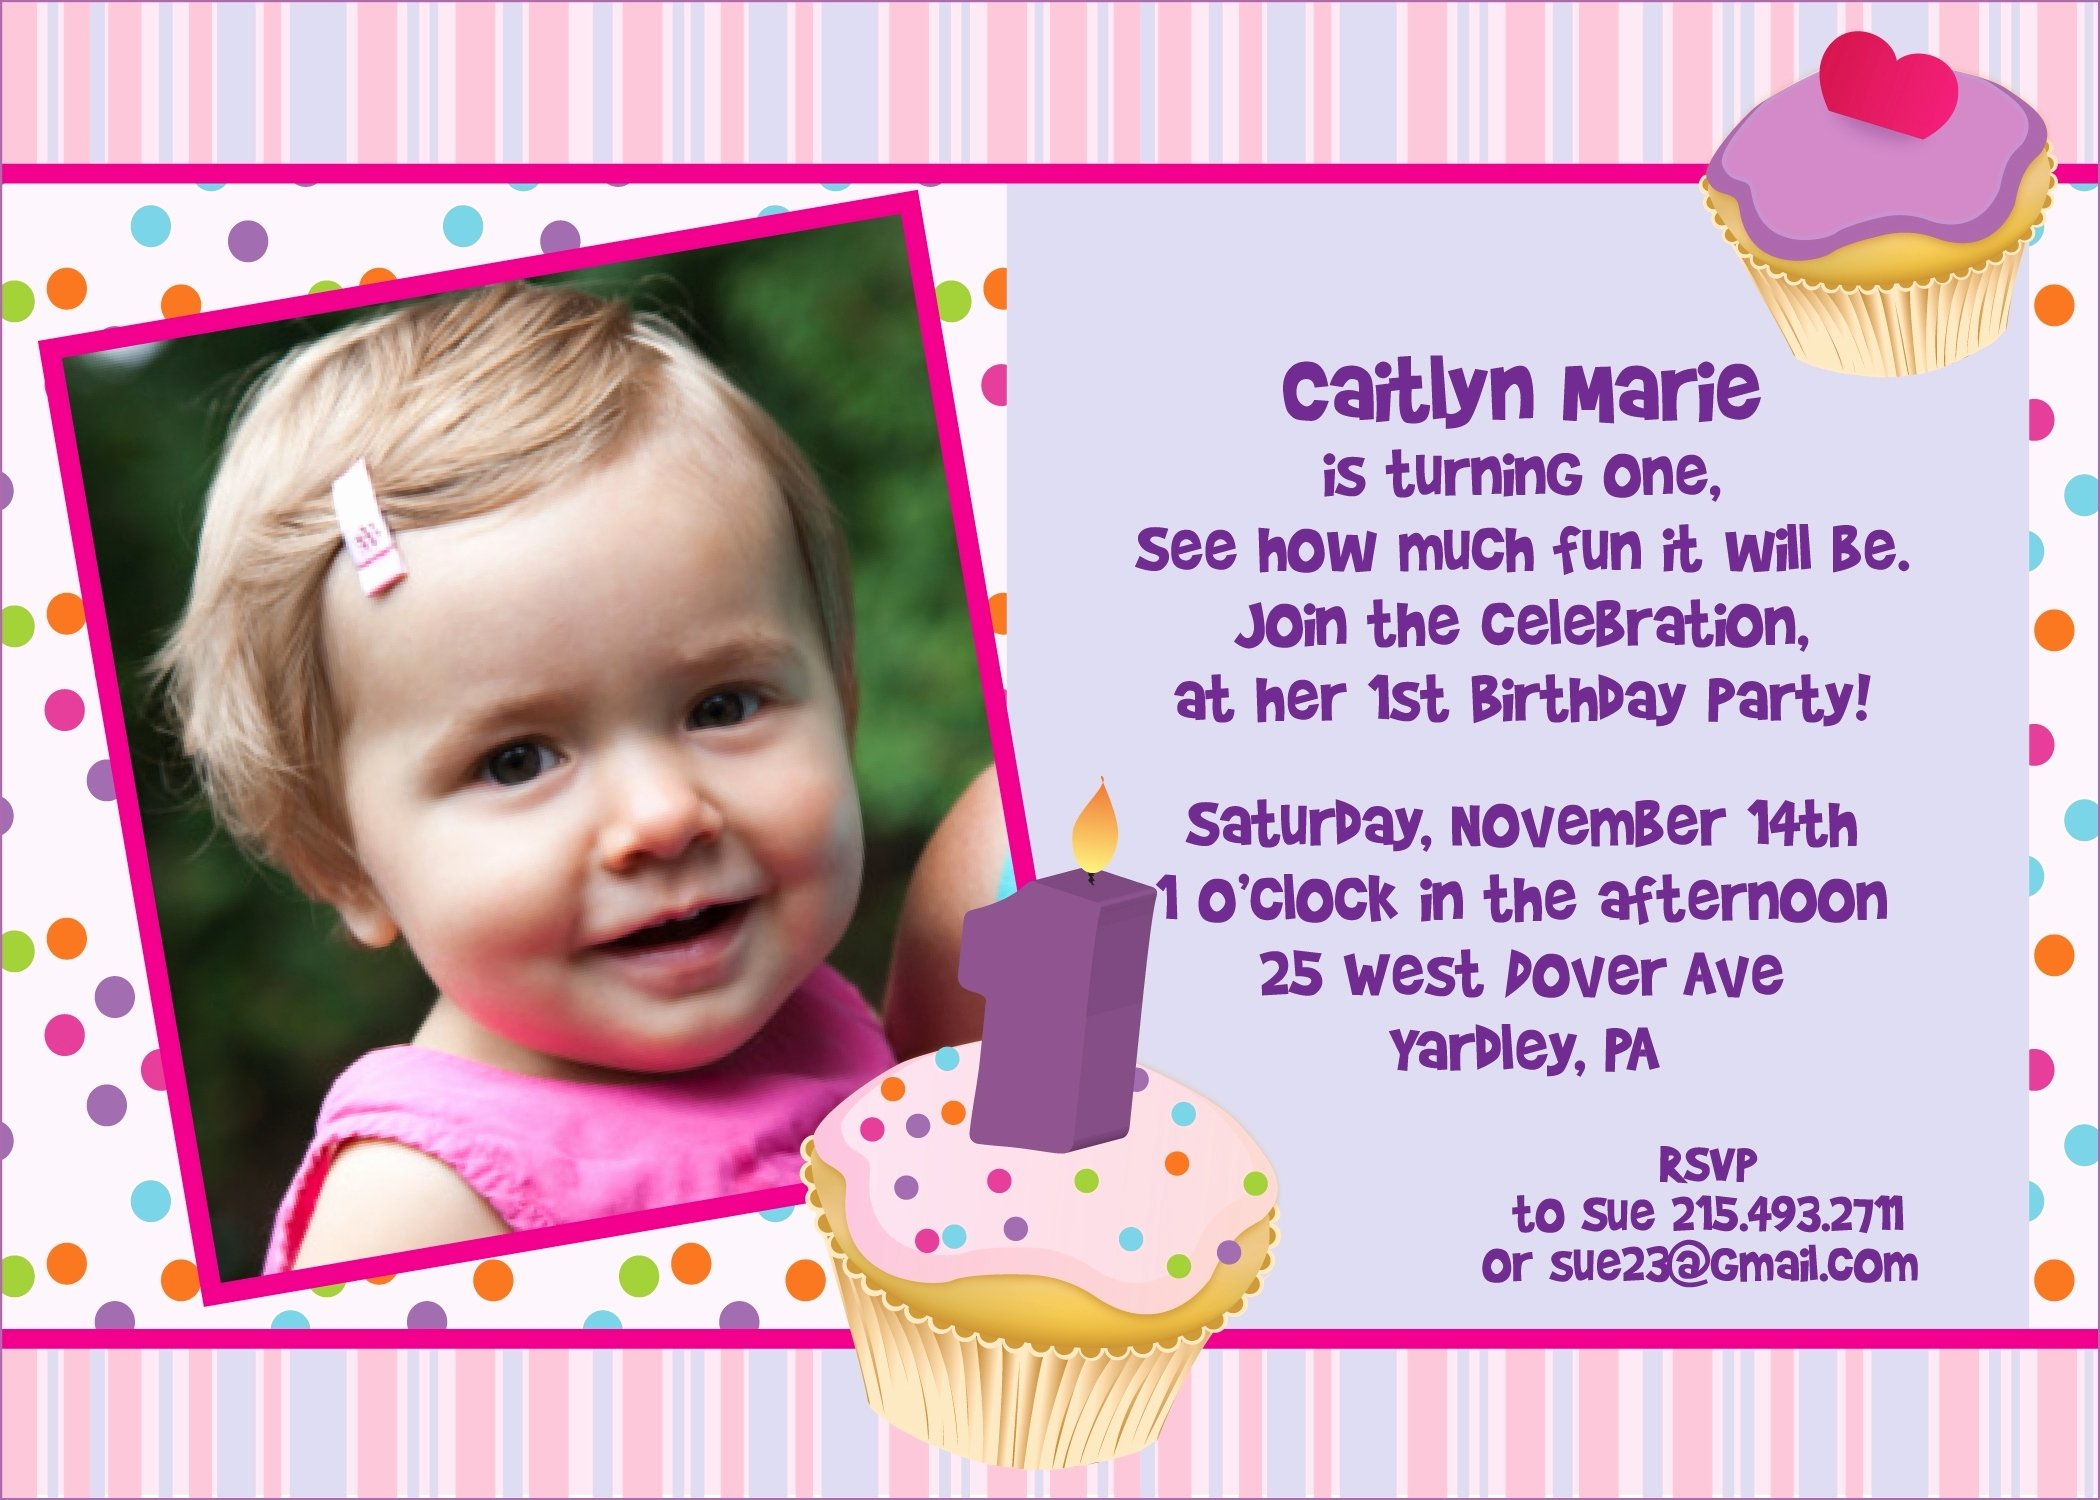 1st Birthday Invitation Wording Samples Lovely Sample Invitation for 1st Birthday Party Cobypic